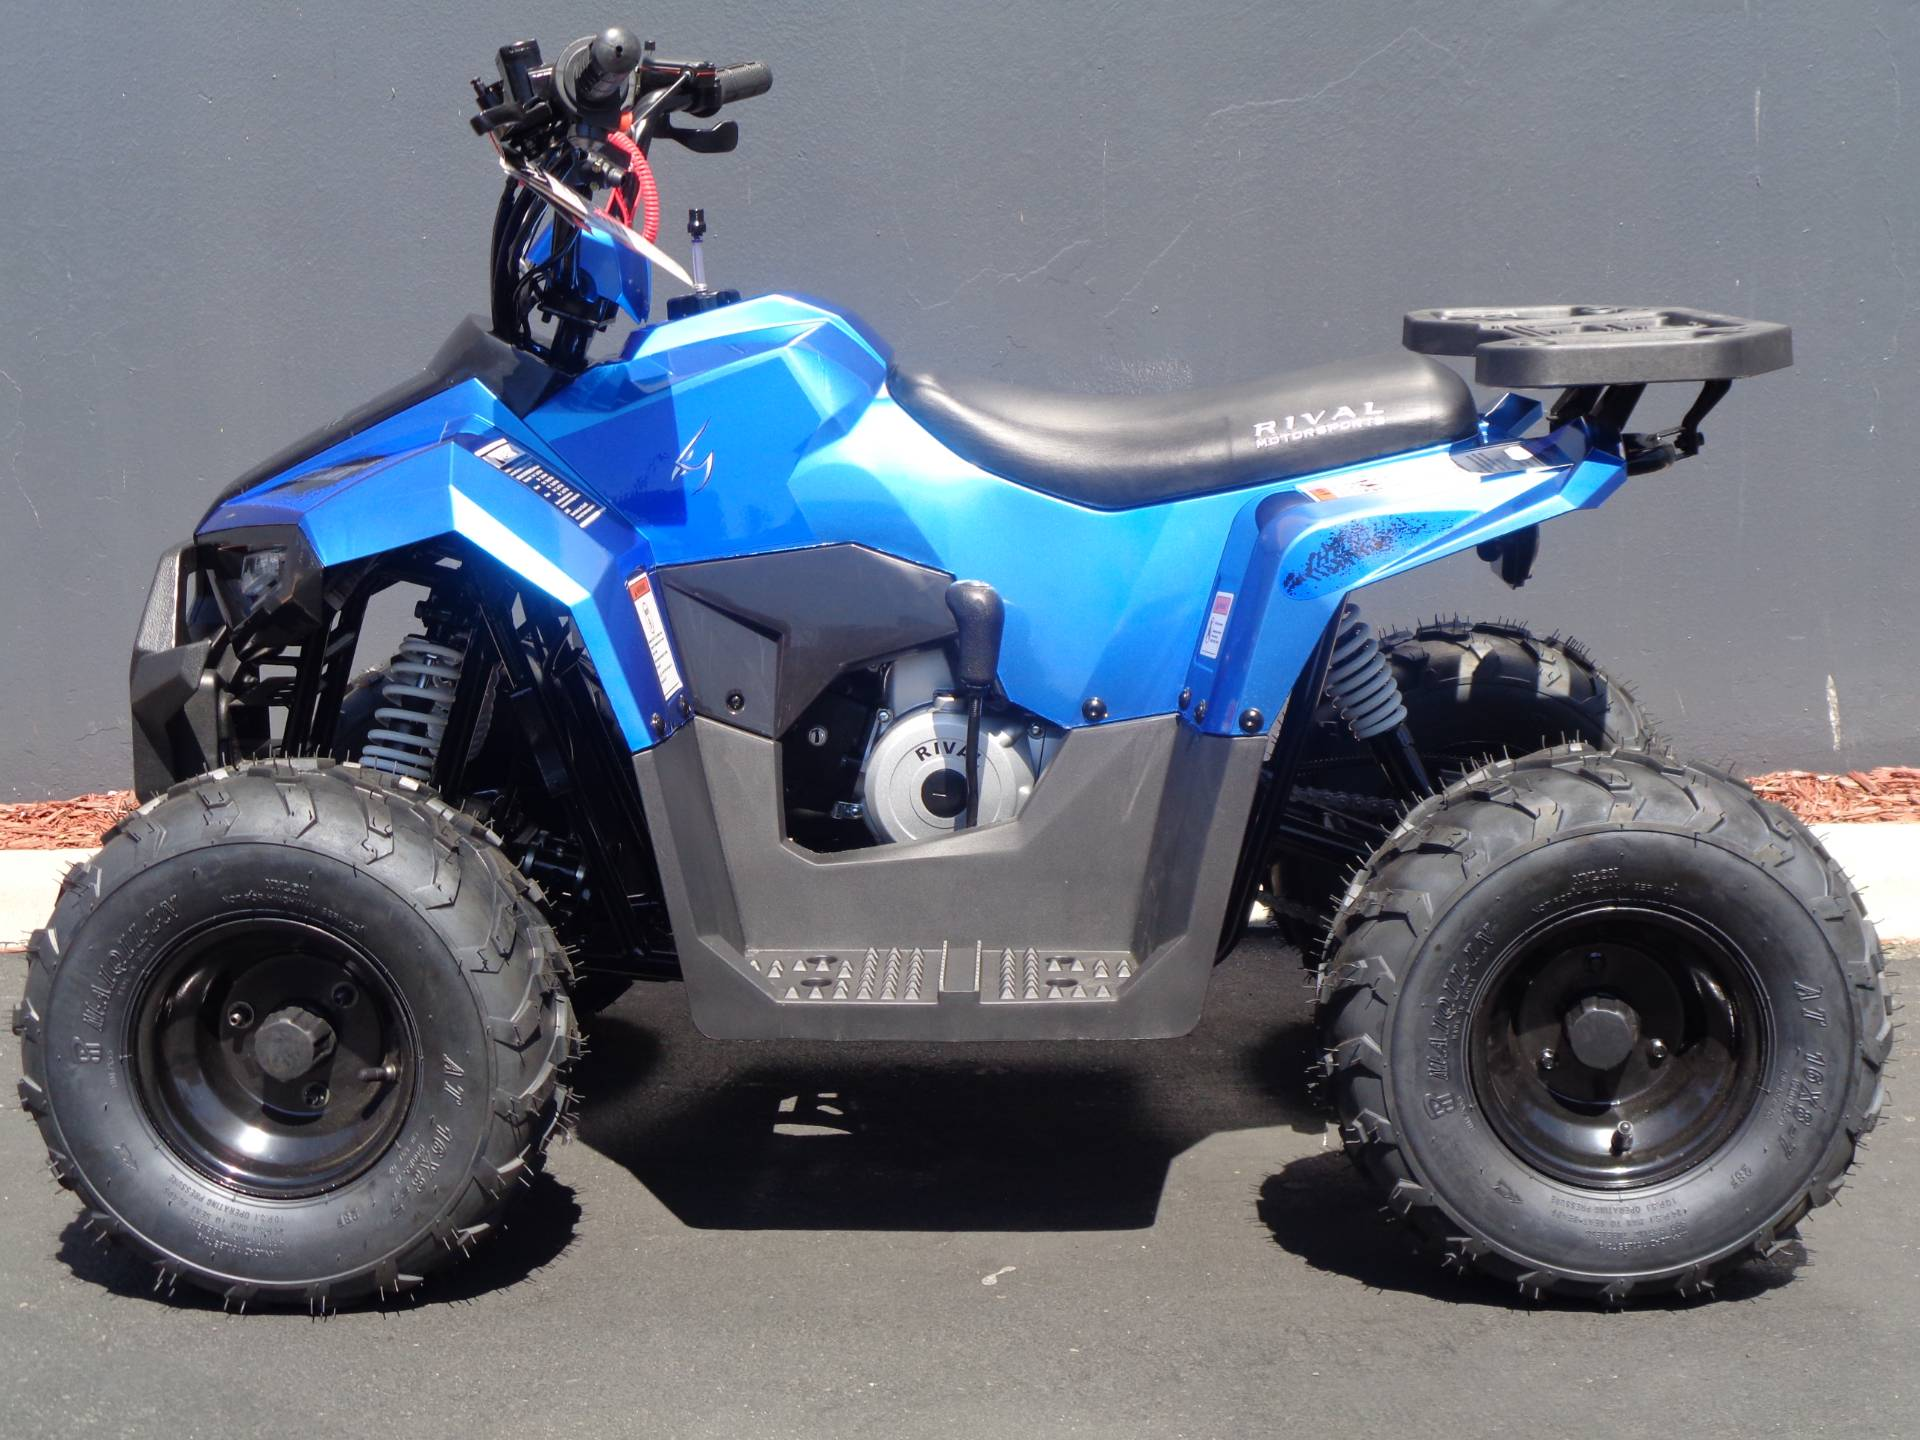 2019 Rival Motorsports CA MudHawk 6 in Chula Vista, California - Photo 9